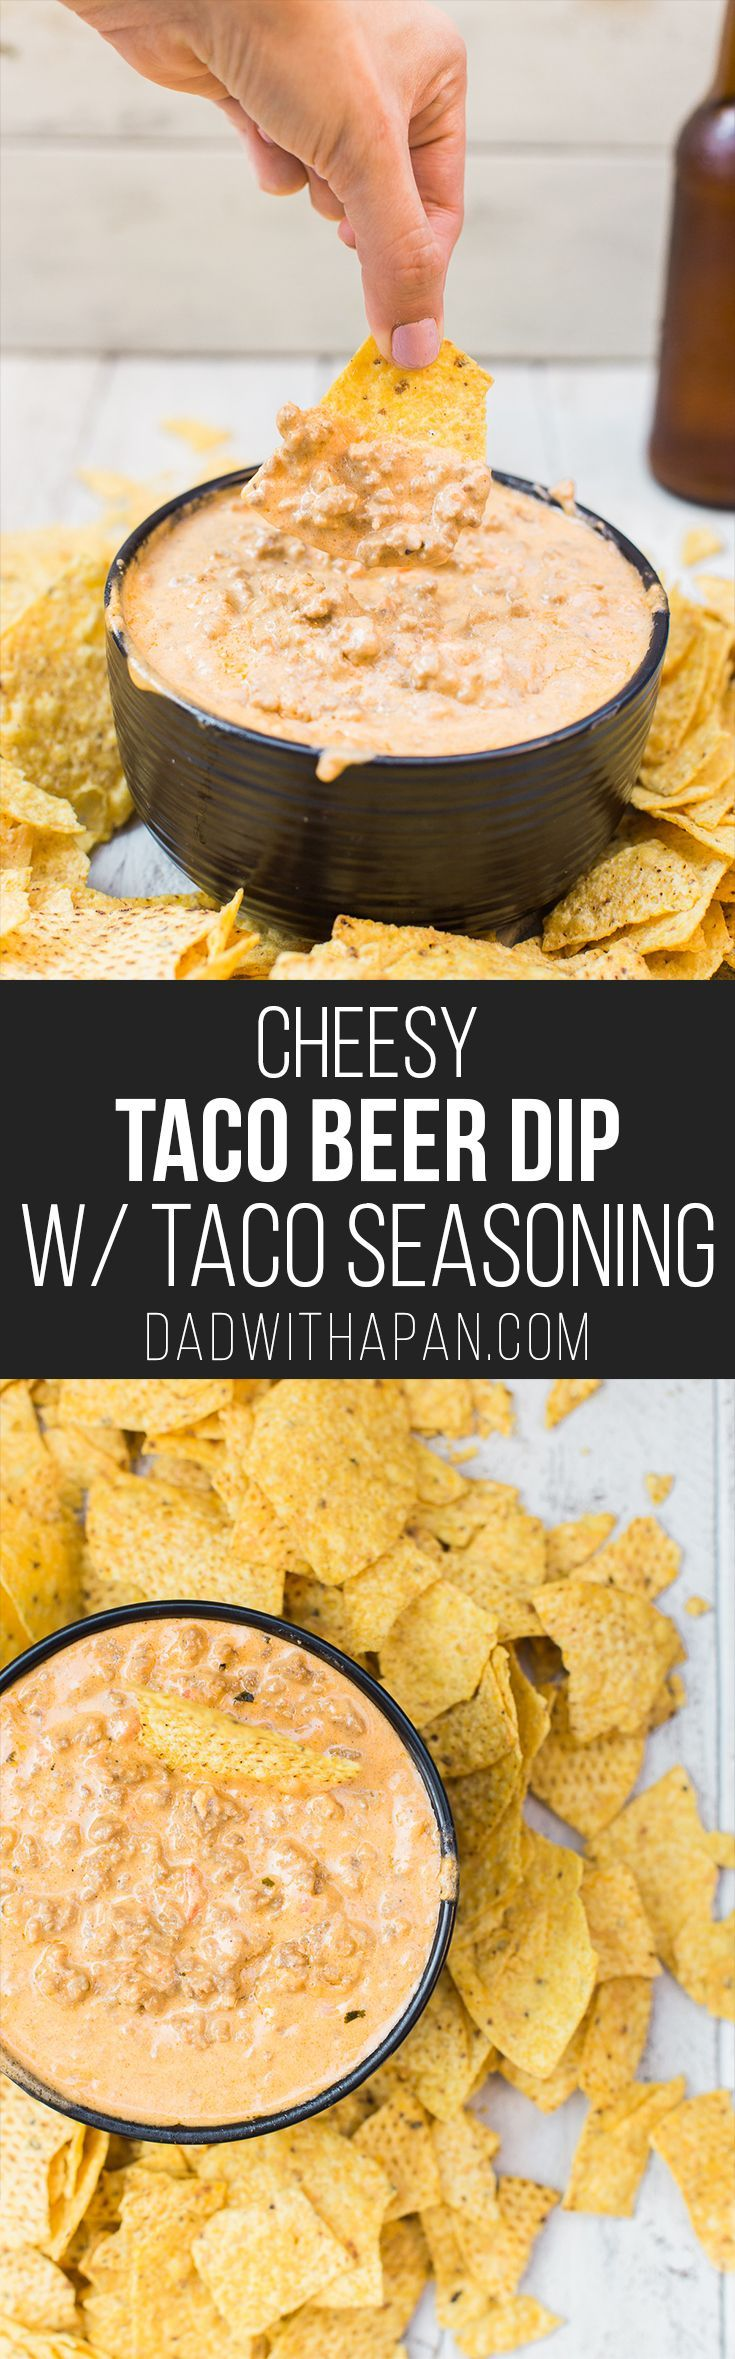 Add taco seasoning to your beefy, beer cheese dip to add a spicy twist to your game day appetizers!